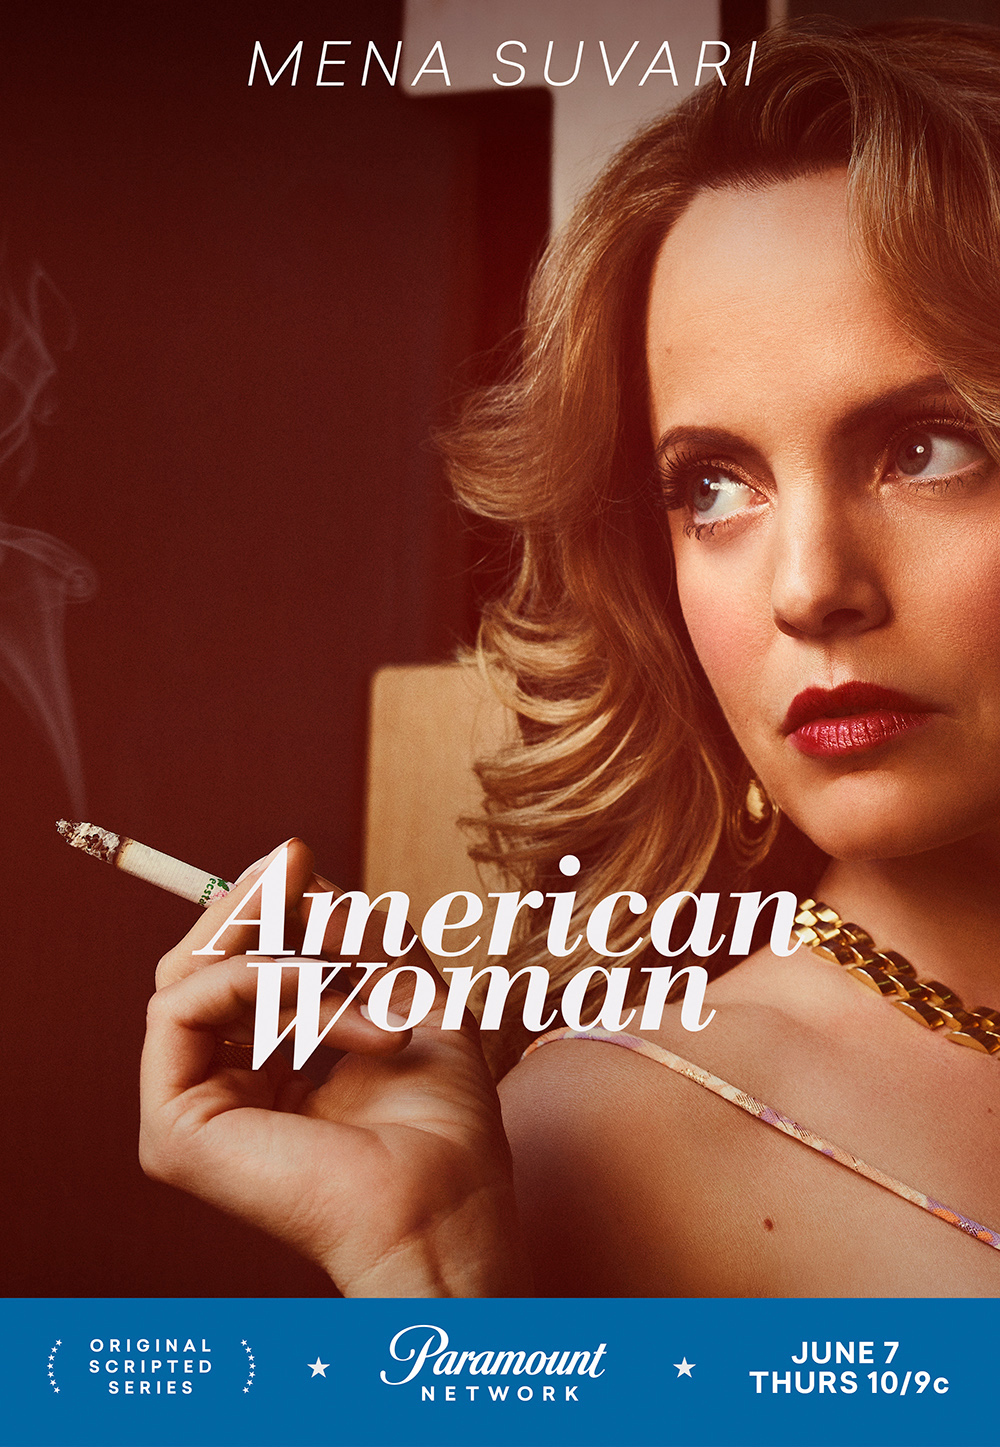 05_Mena-single-smoking-copy.jpg